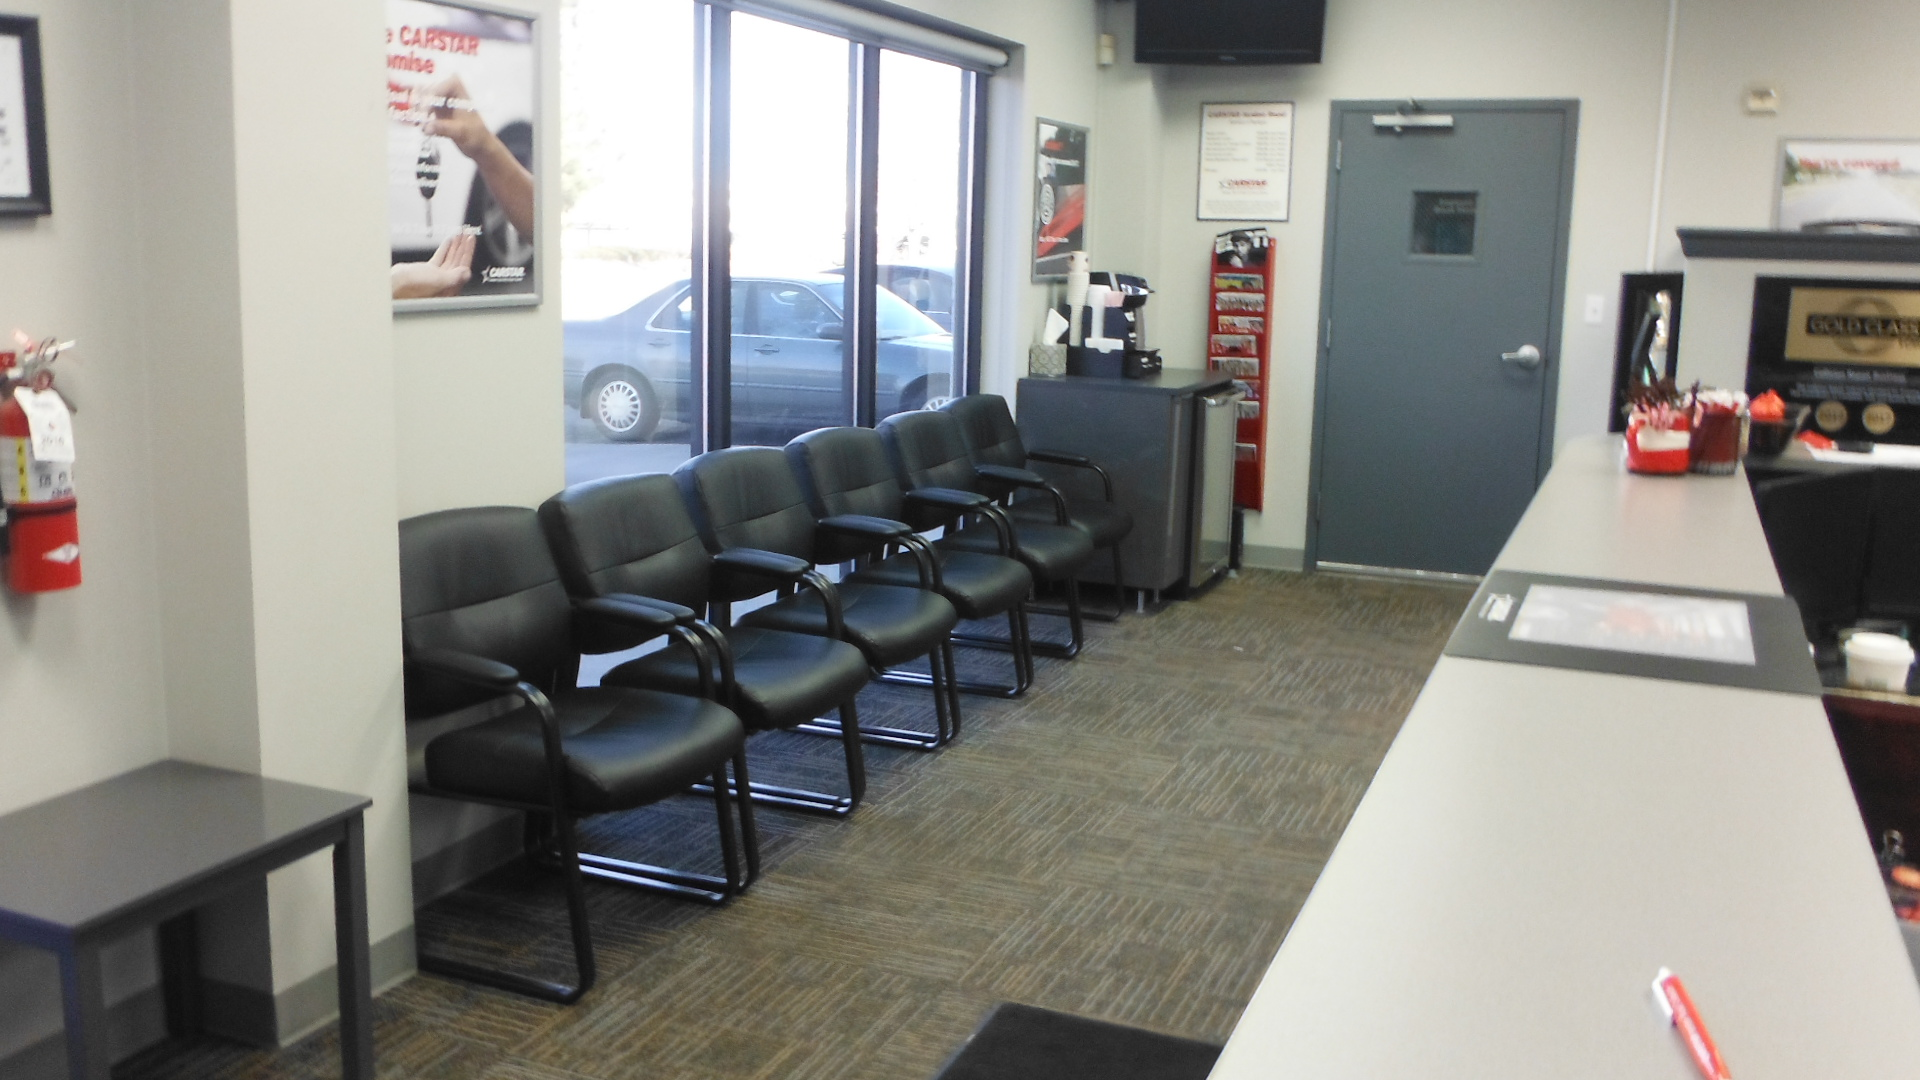 Jordan Road CARSTAR Collision Repair: Customer Waiting Area